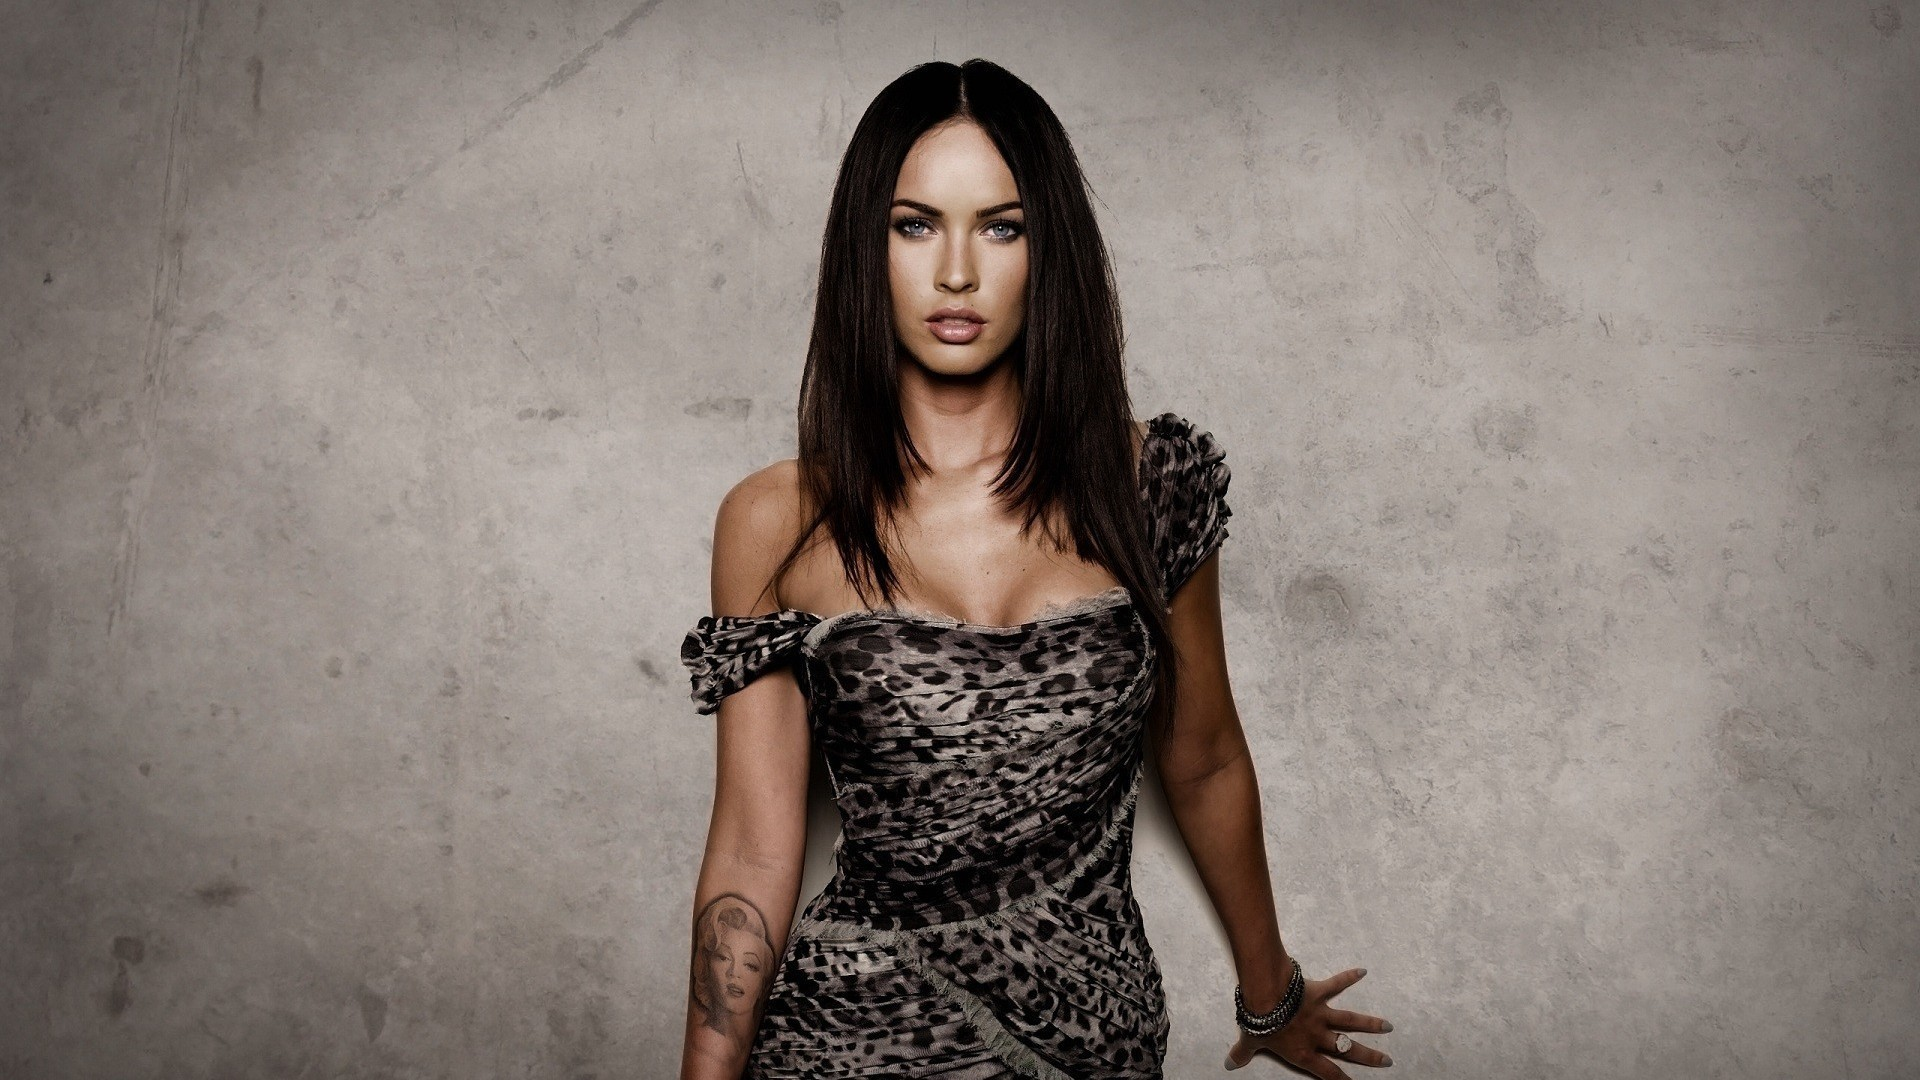 megan-fox-hd-resolution-wallpaper | wallpaper.wiki